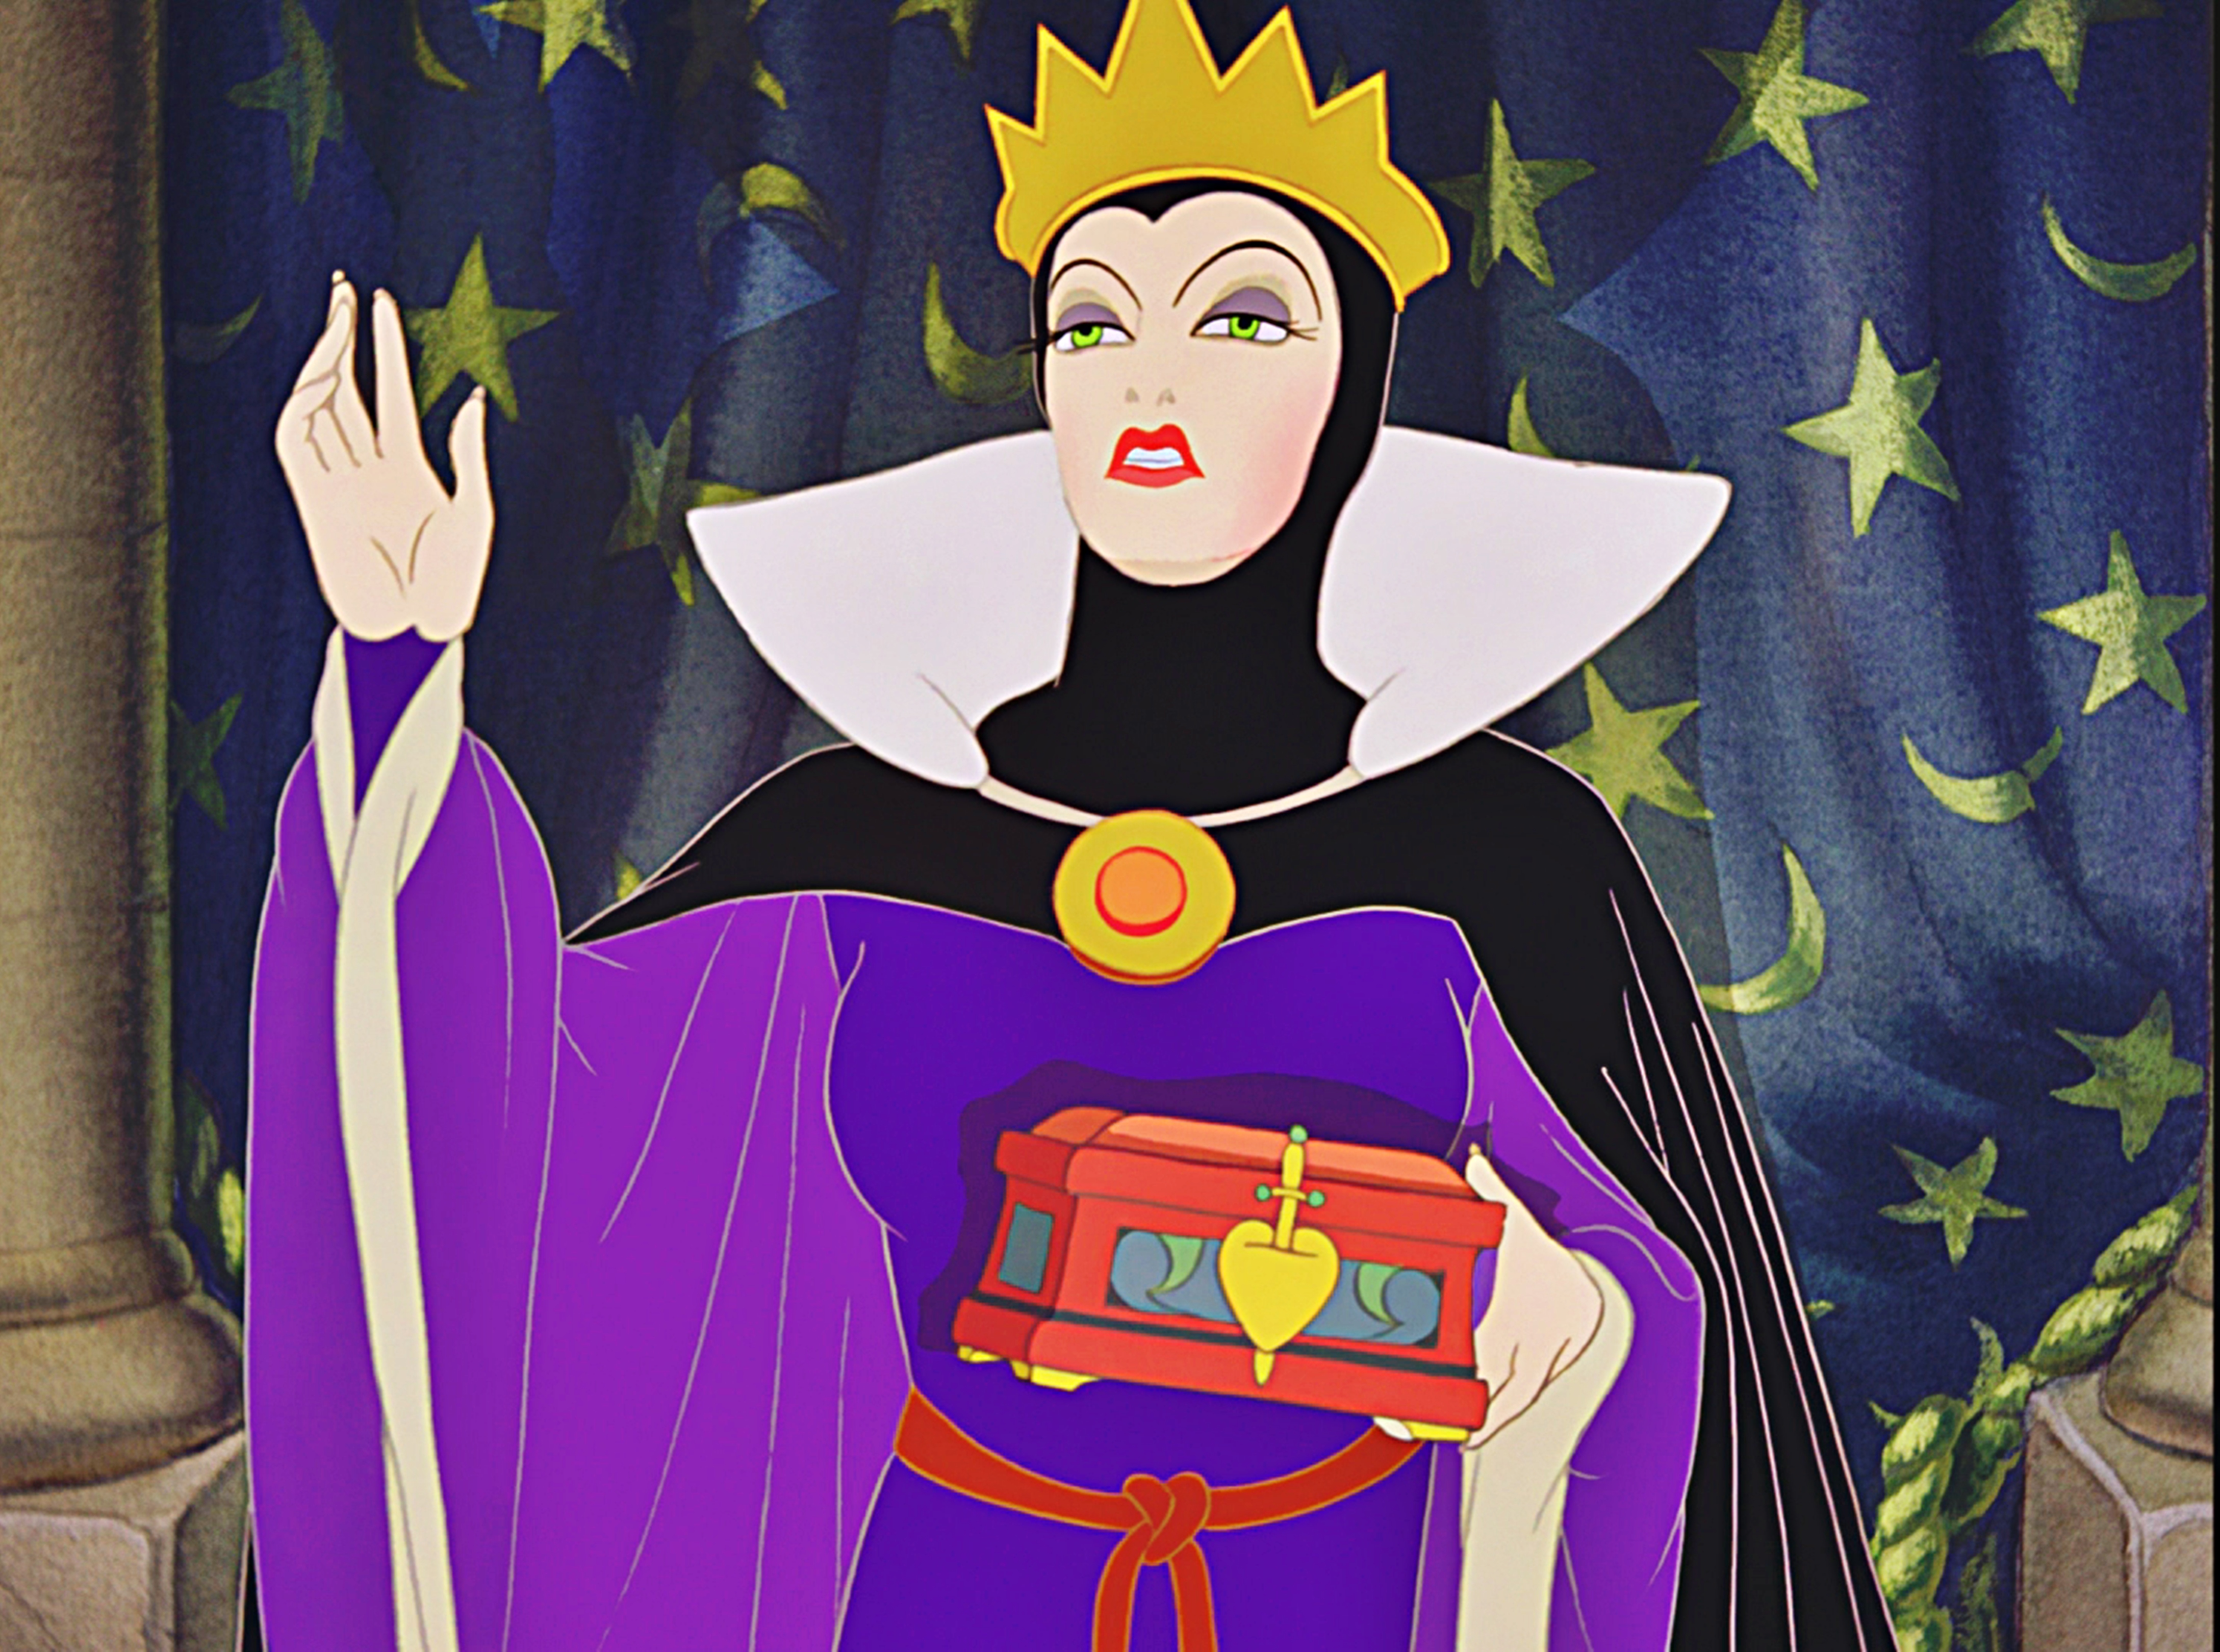 Queen guimhilde ugly disney characters clipart svg transparent download Create A Boss - Page 2 svg transparent download